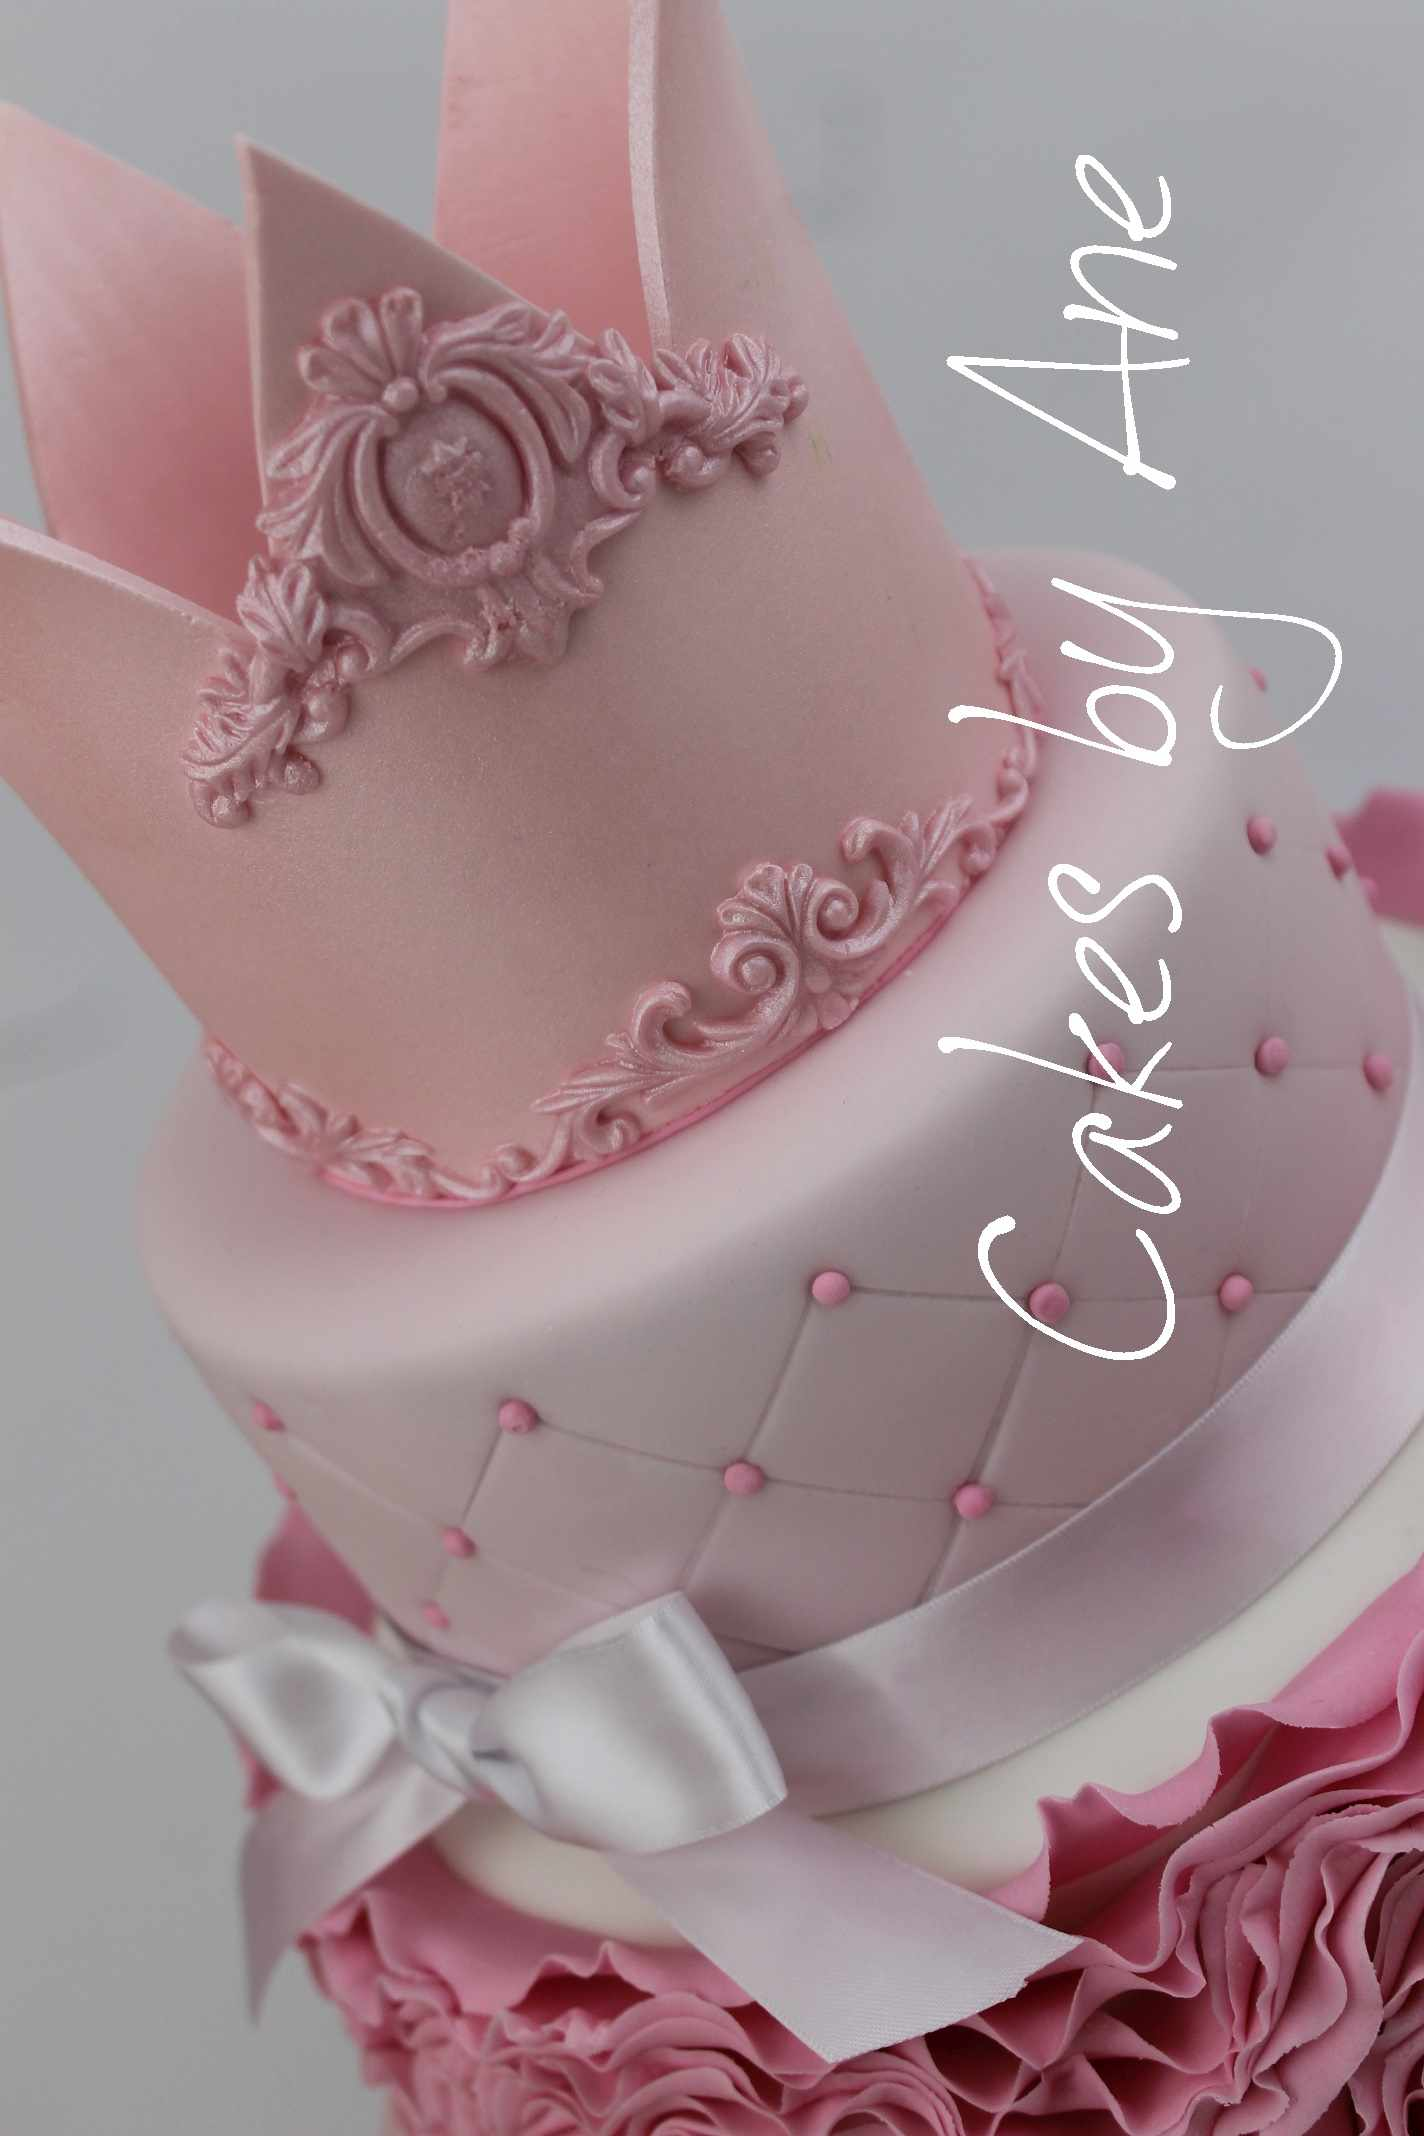 Cakes By Ane